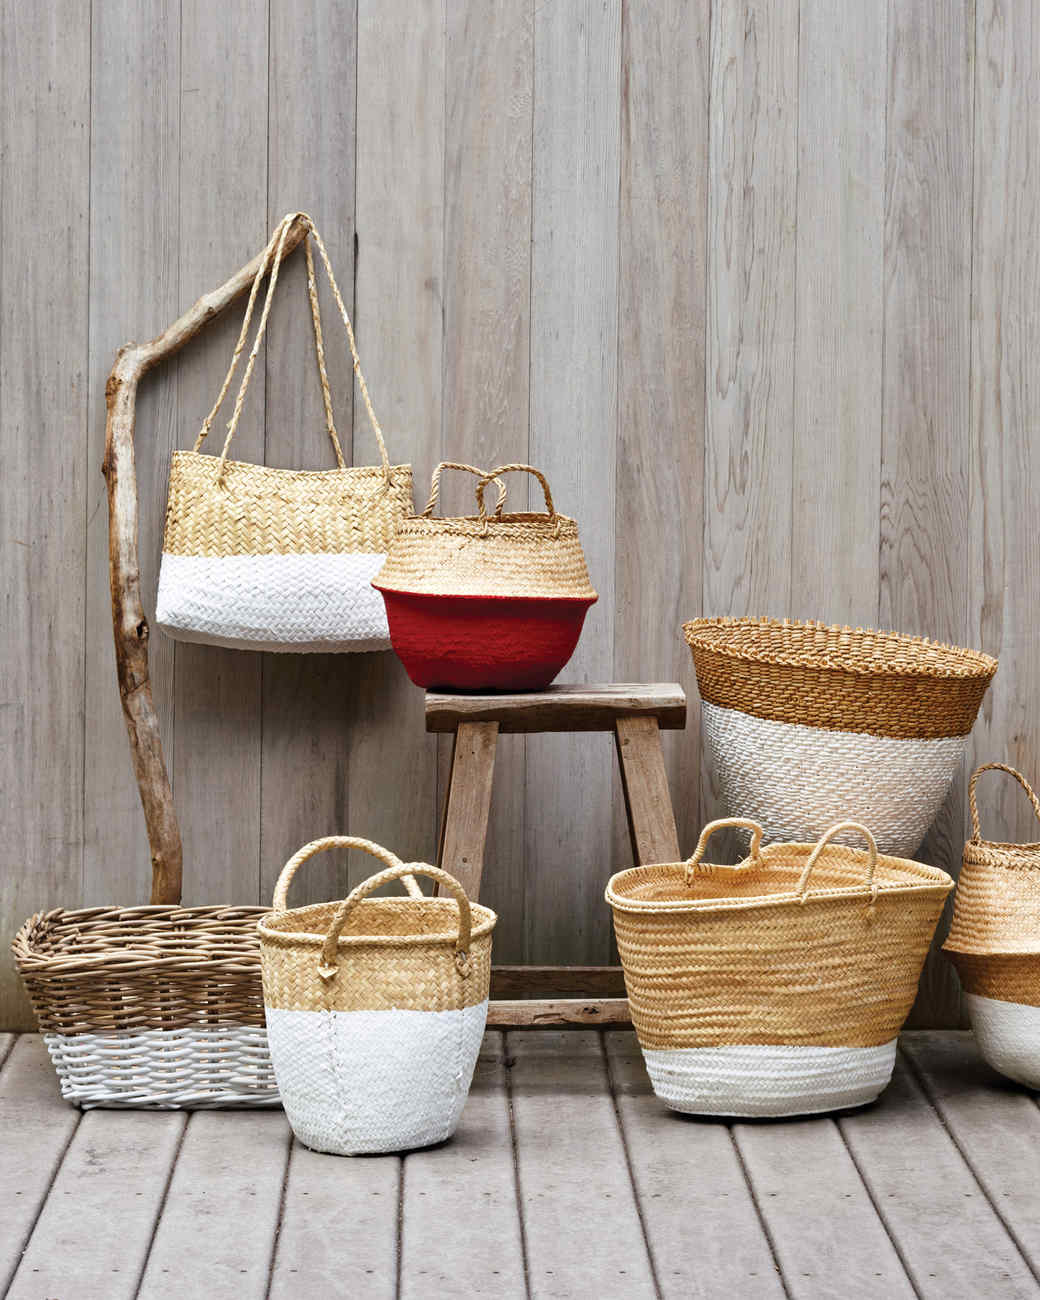 DIY Dip Dye Baskets from MS Living